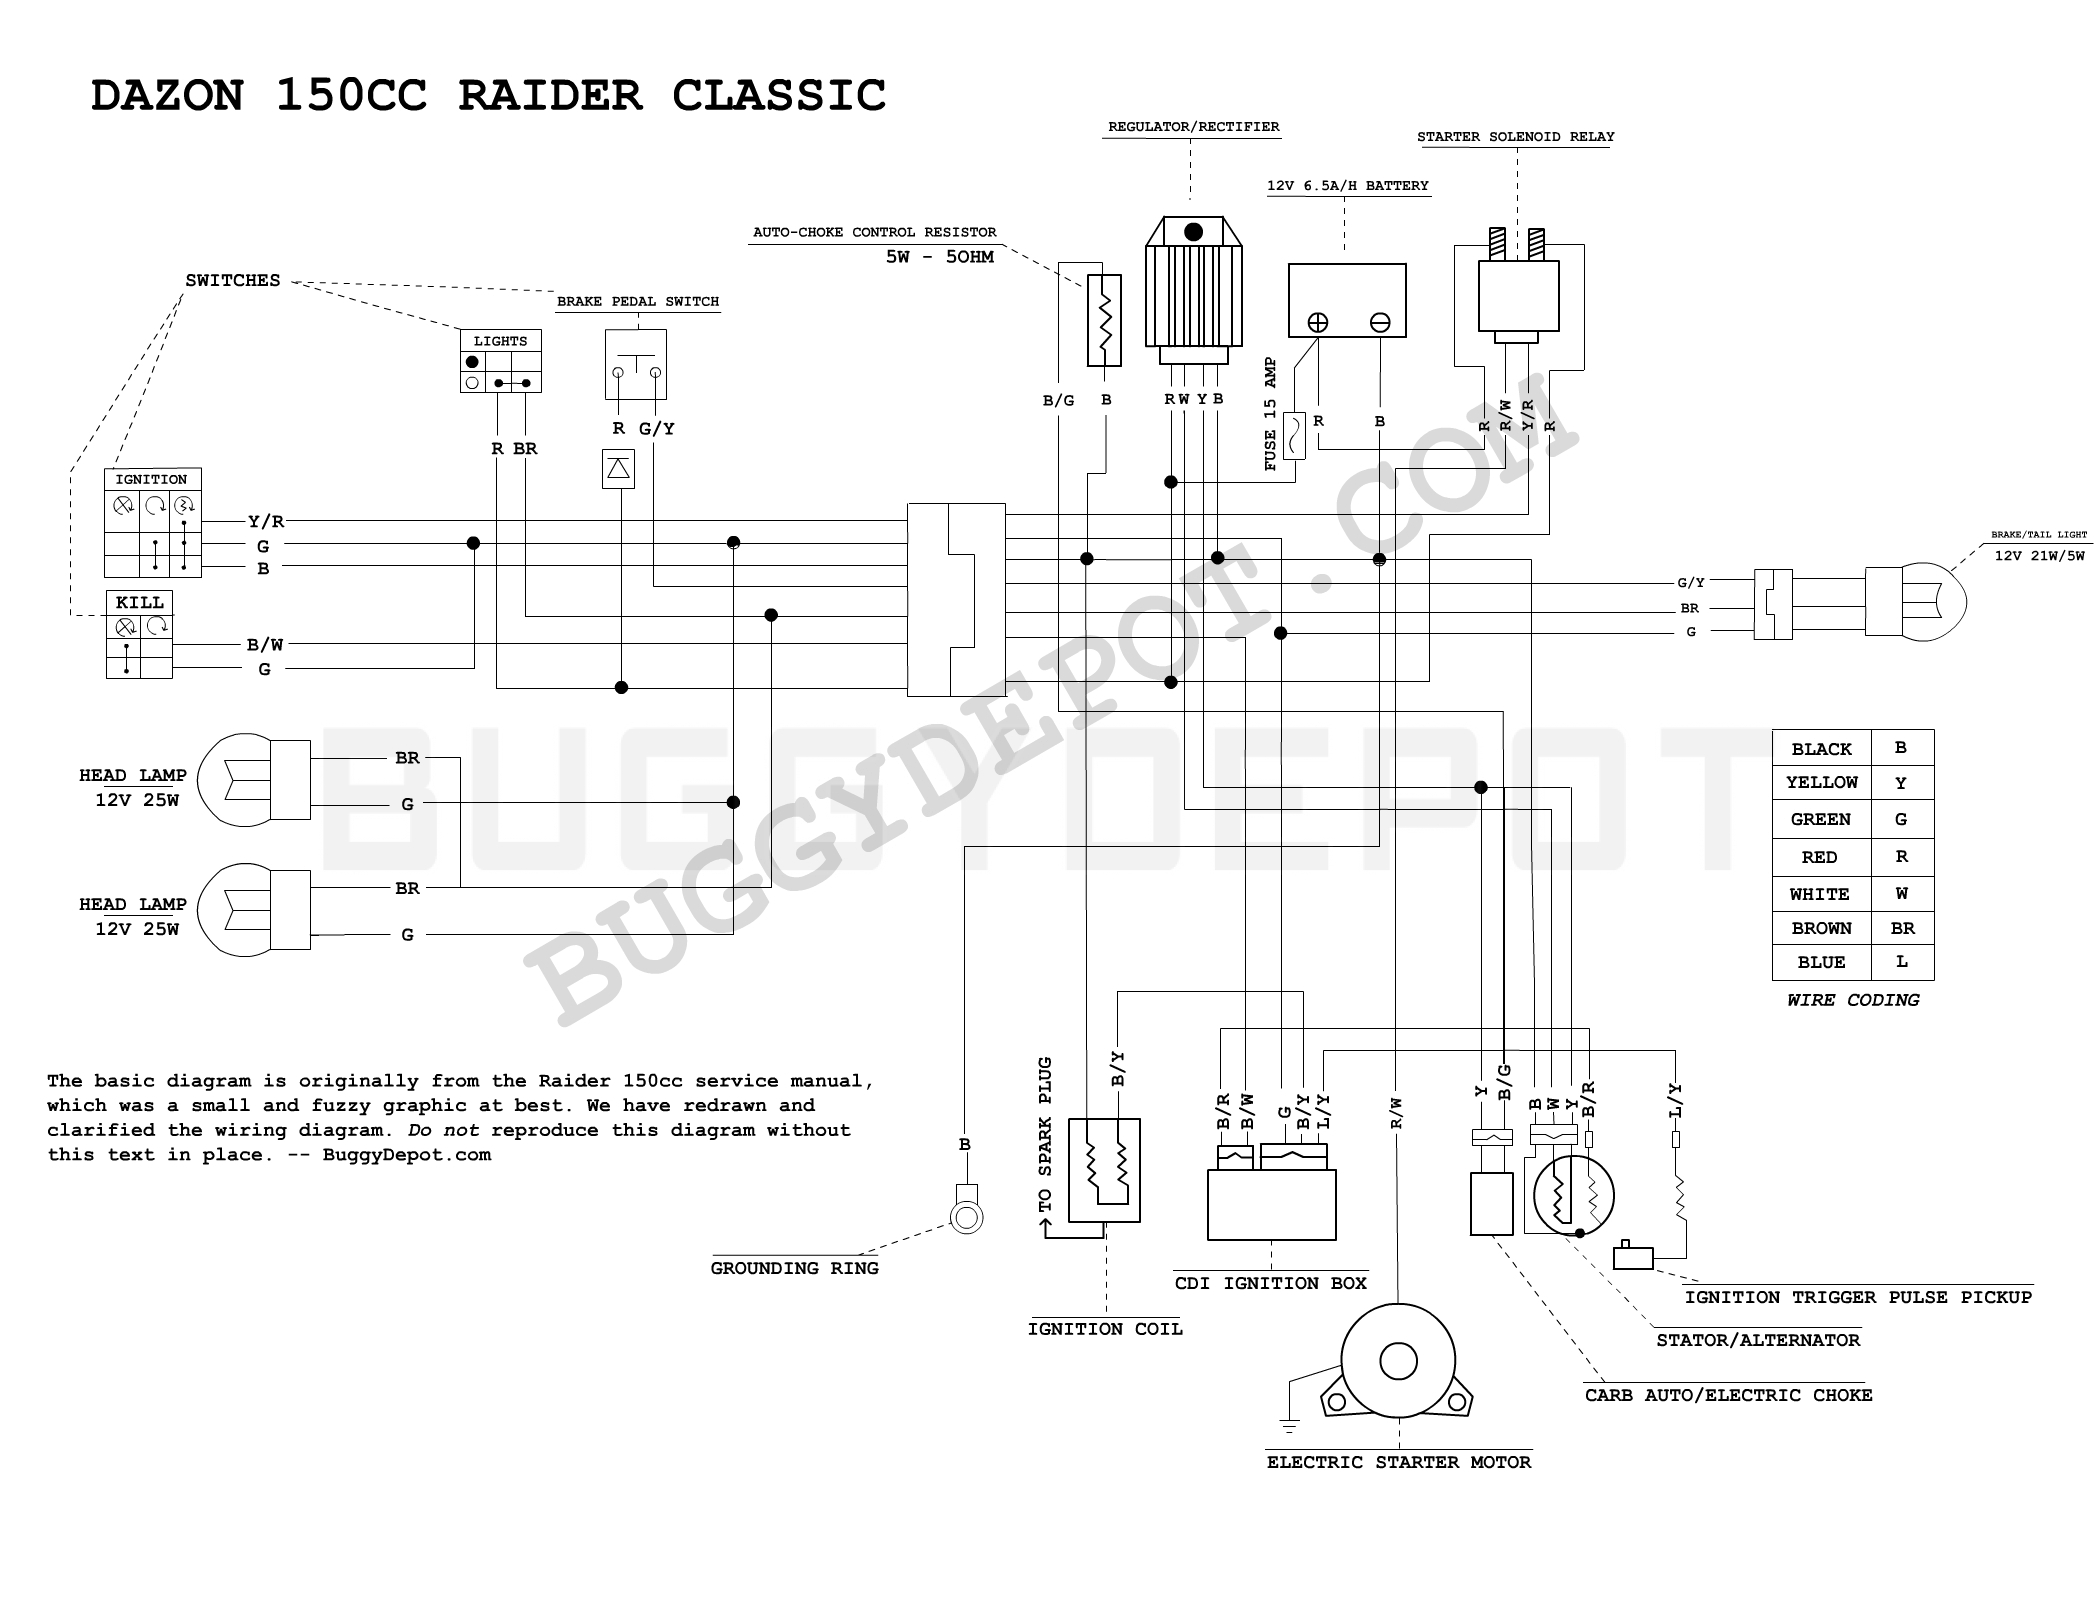 yerf dog 150cc wiring diagram (go kart) buggy depot technical center  dazon raider classic \u2013 wiring diagram